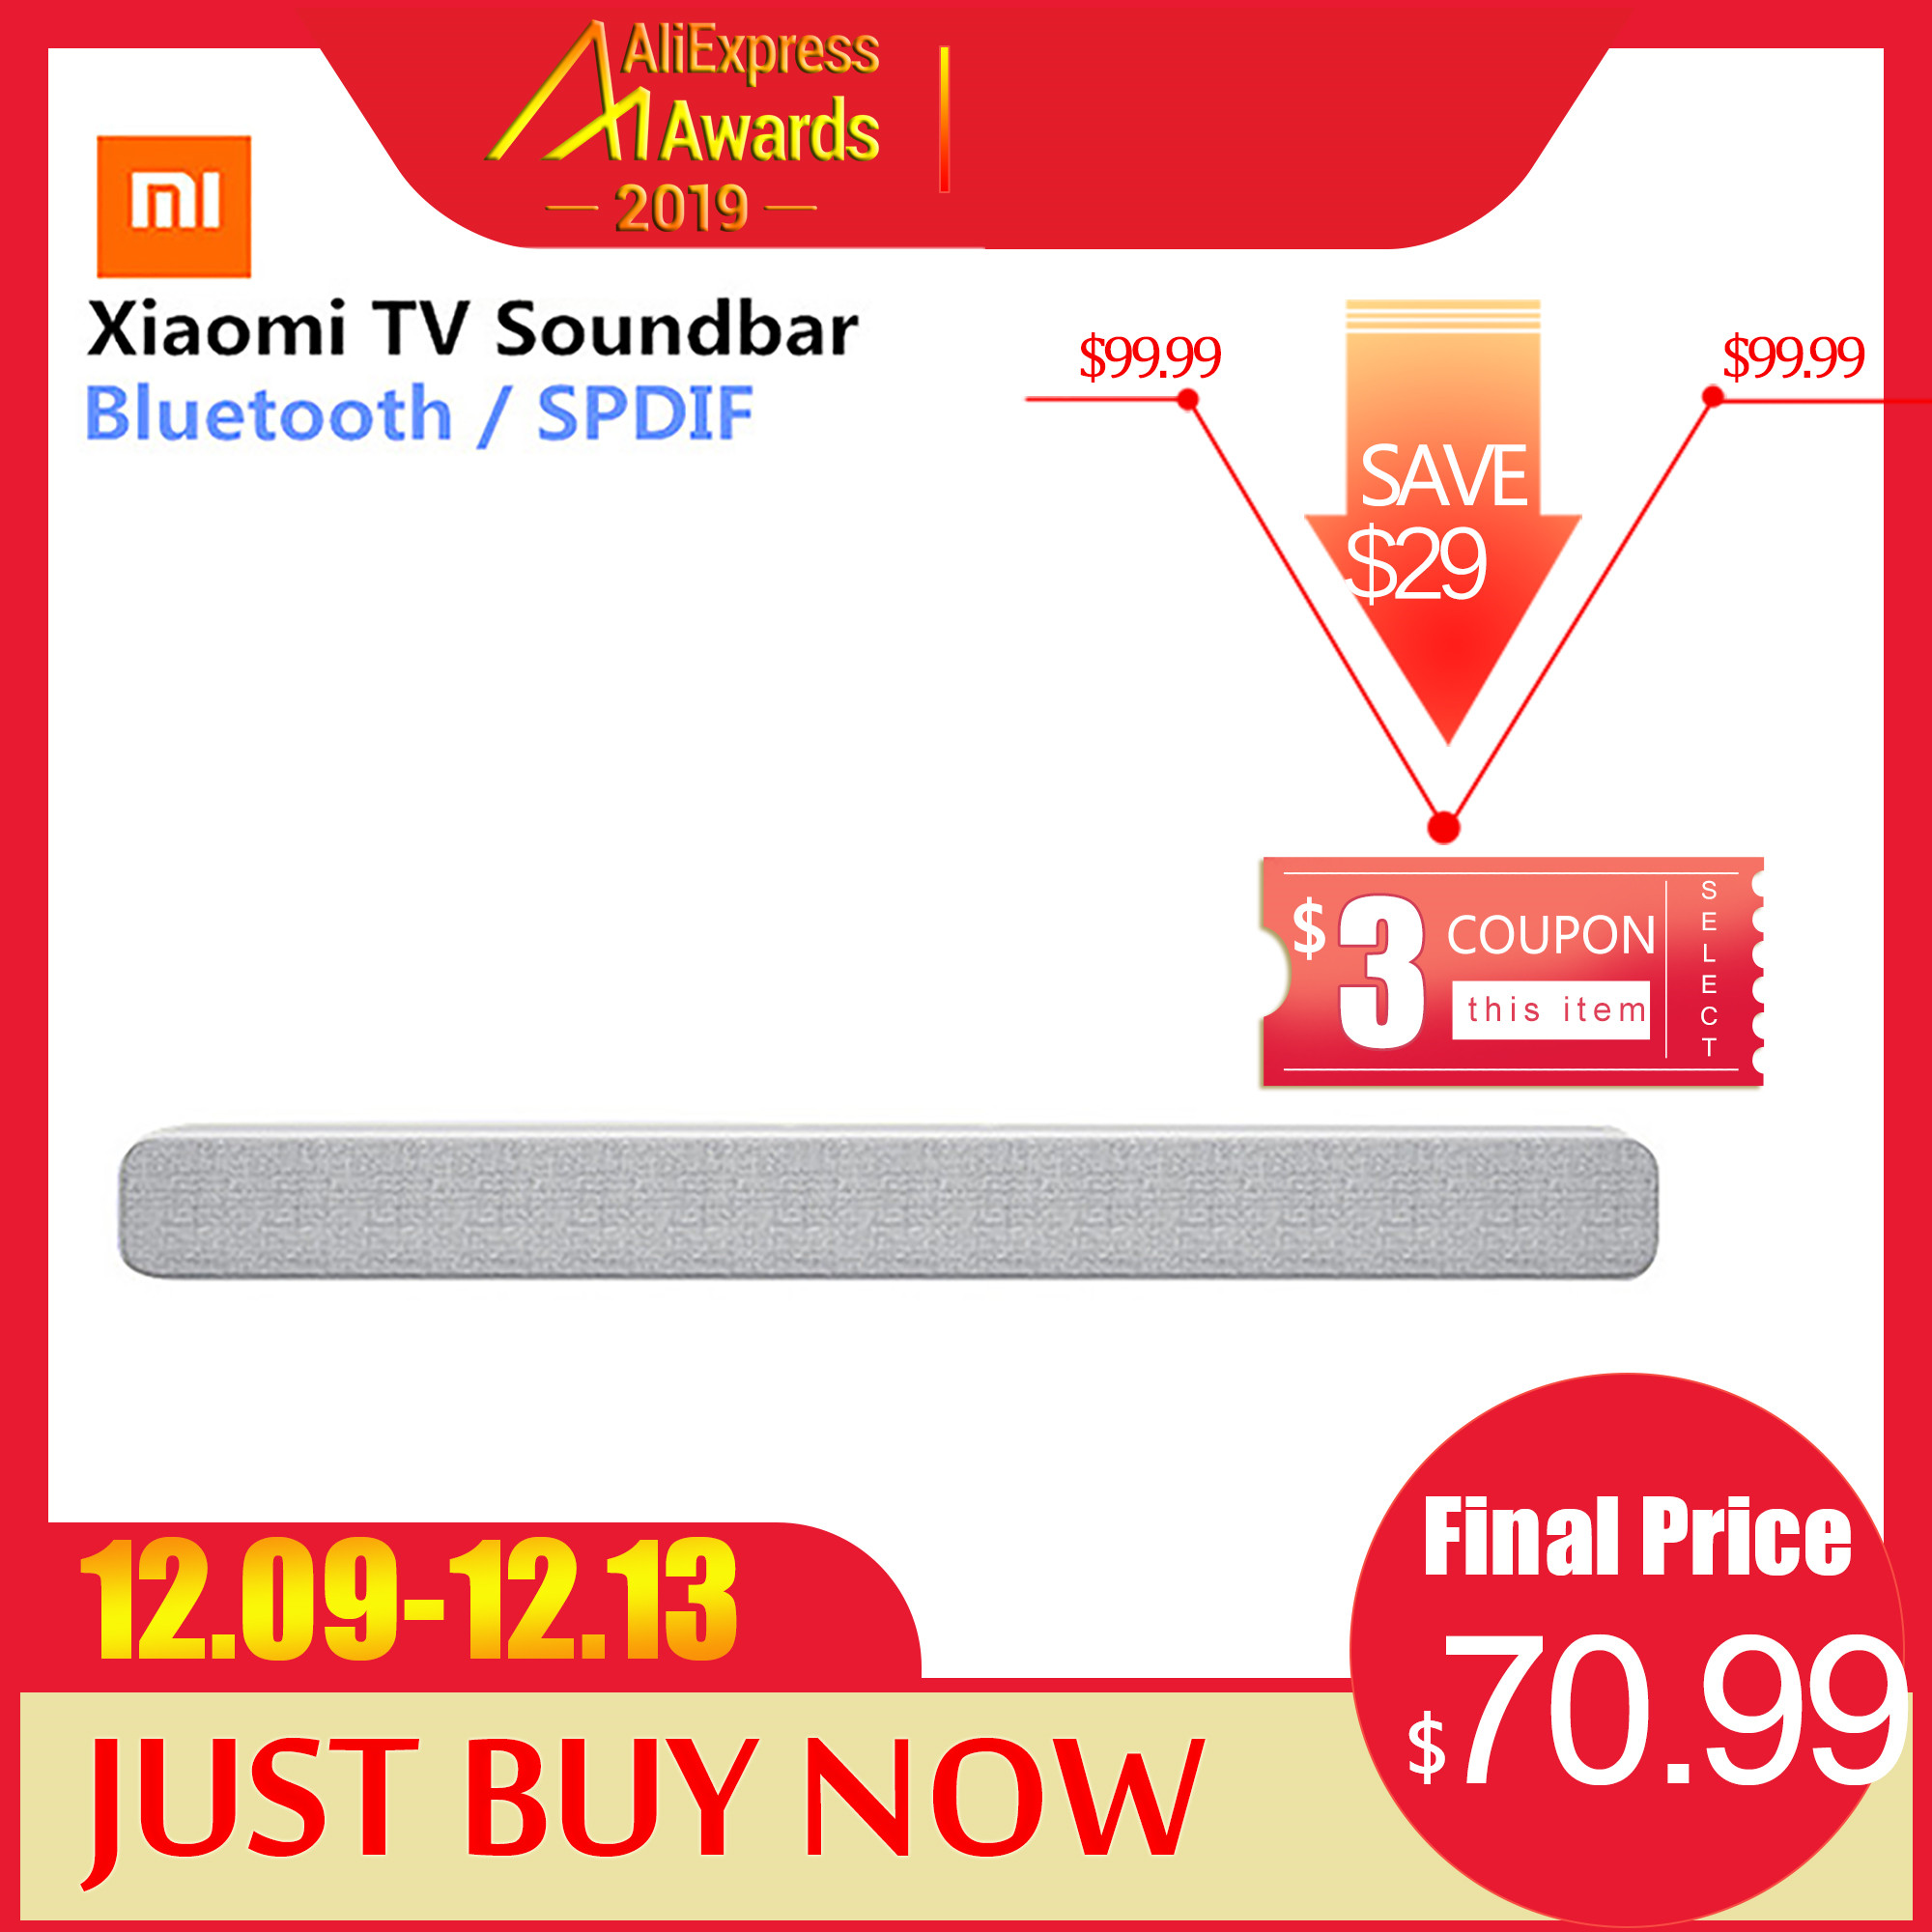 Xiaomi Wireless TV Soundbar Bluetooth Speaker Stylish Fabric Sound bar Support Bluetooth Playback Optical SPDIF AUX IN For Home